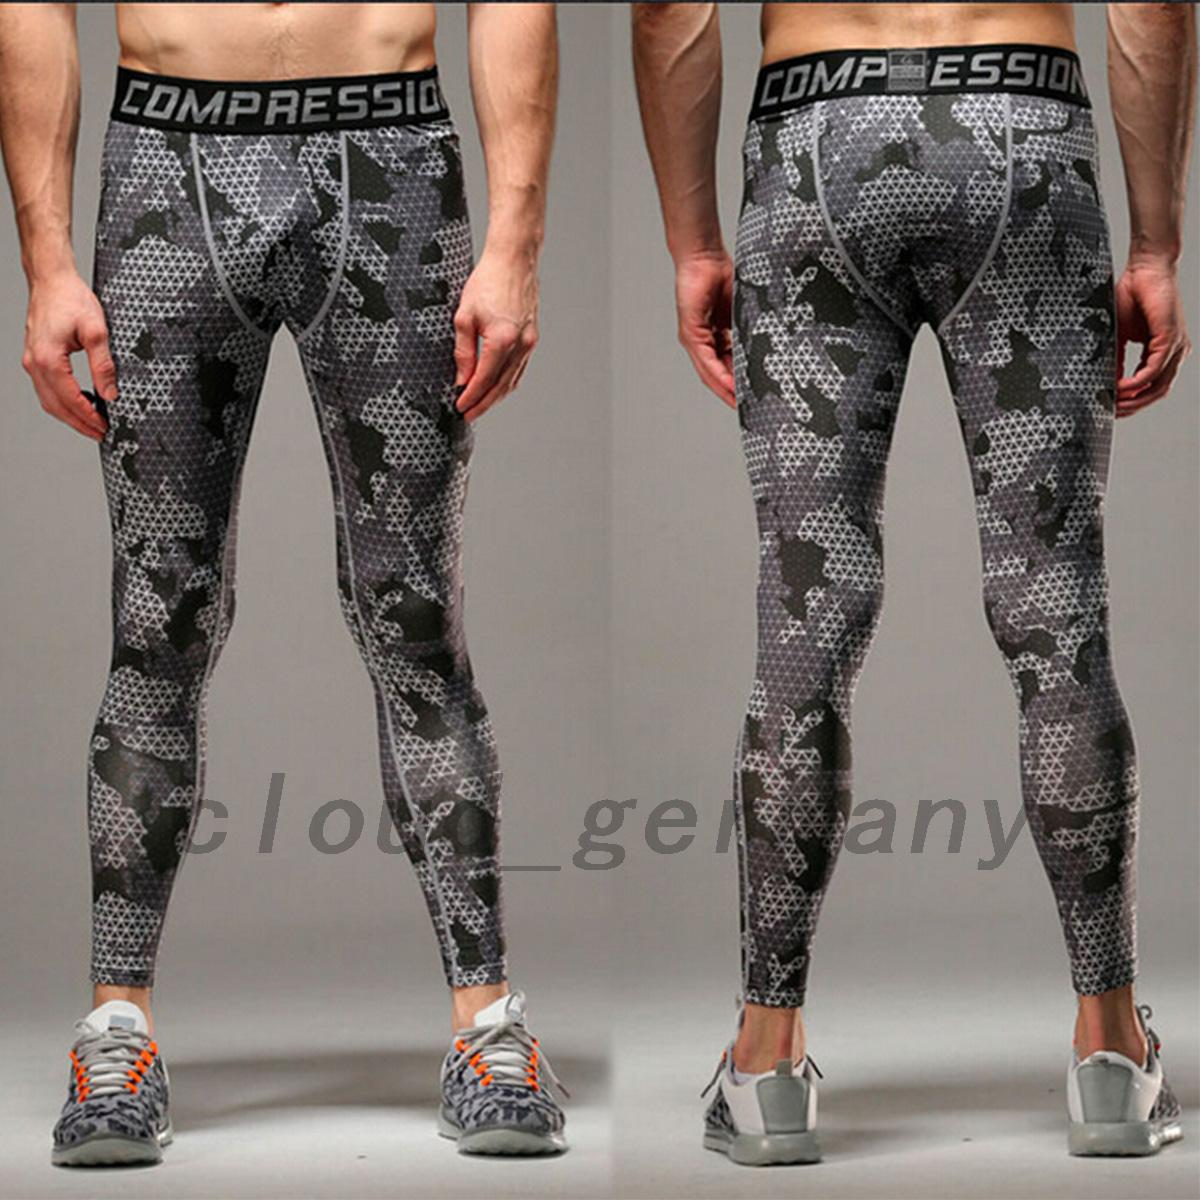 homme sport pantalon de compression leggings sport collant camoufl imprim ebay. Black Bedroom Furniture Sets. Home Design Ideas